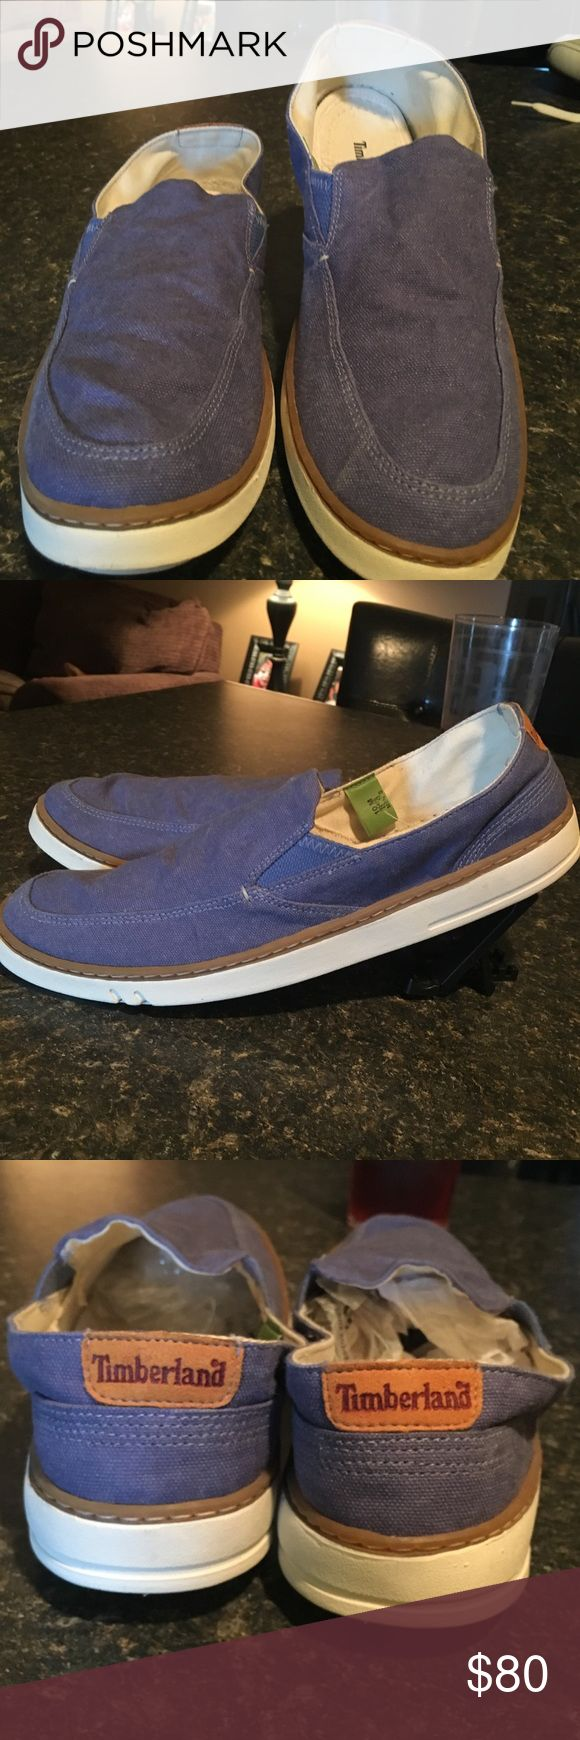 Men's Timberland shoe/sneaker/boat shoe sz 10 nwot Men's Timberland shoe/sneaker/boat shoe loafers size  10 new with out tags and box never worn Timberland Shoes Sneakers